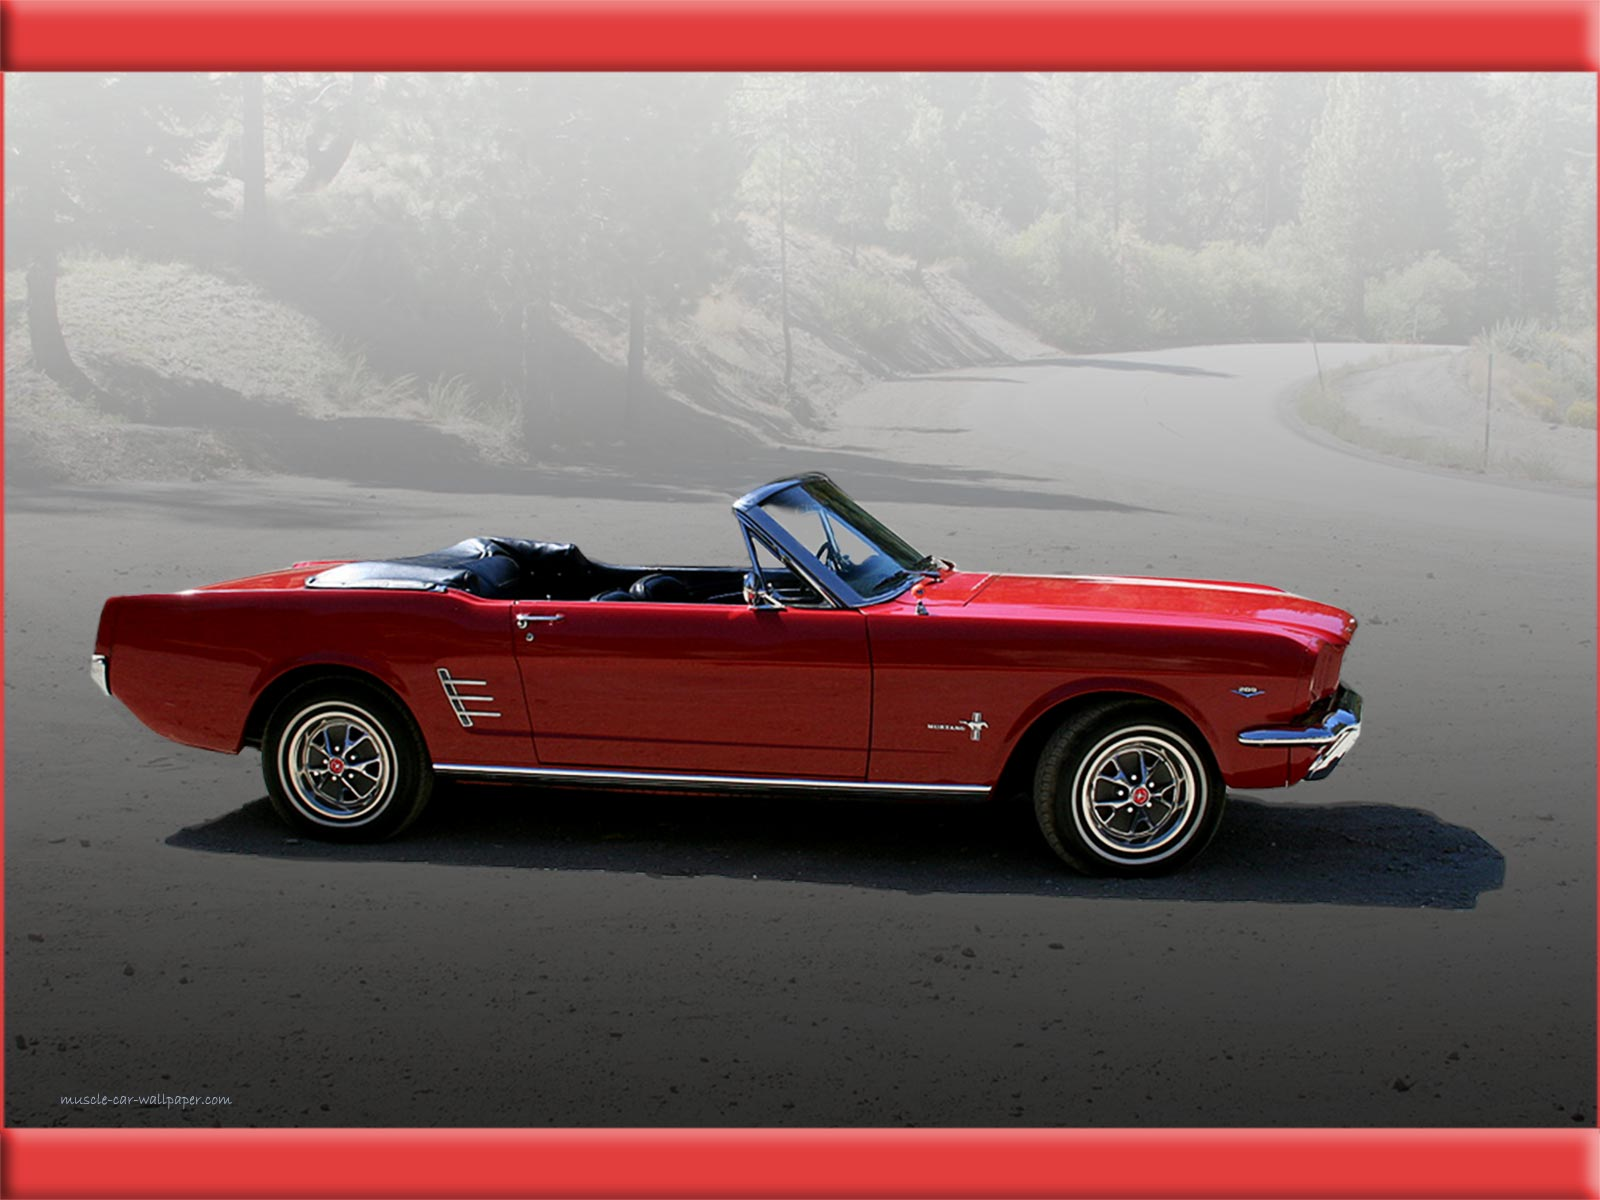 Mustang Wallpaper Pictures 1968 Muscle Car Wallpaper 1600 02 1600x1200